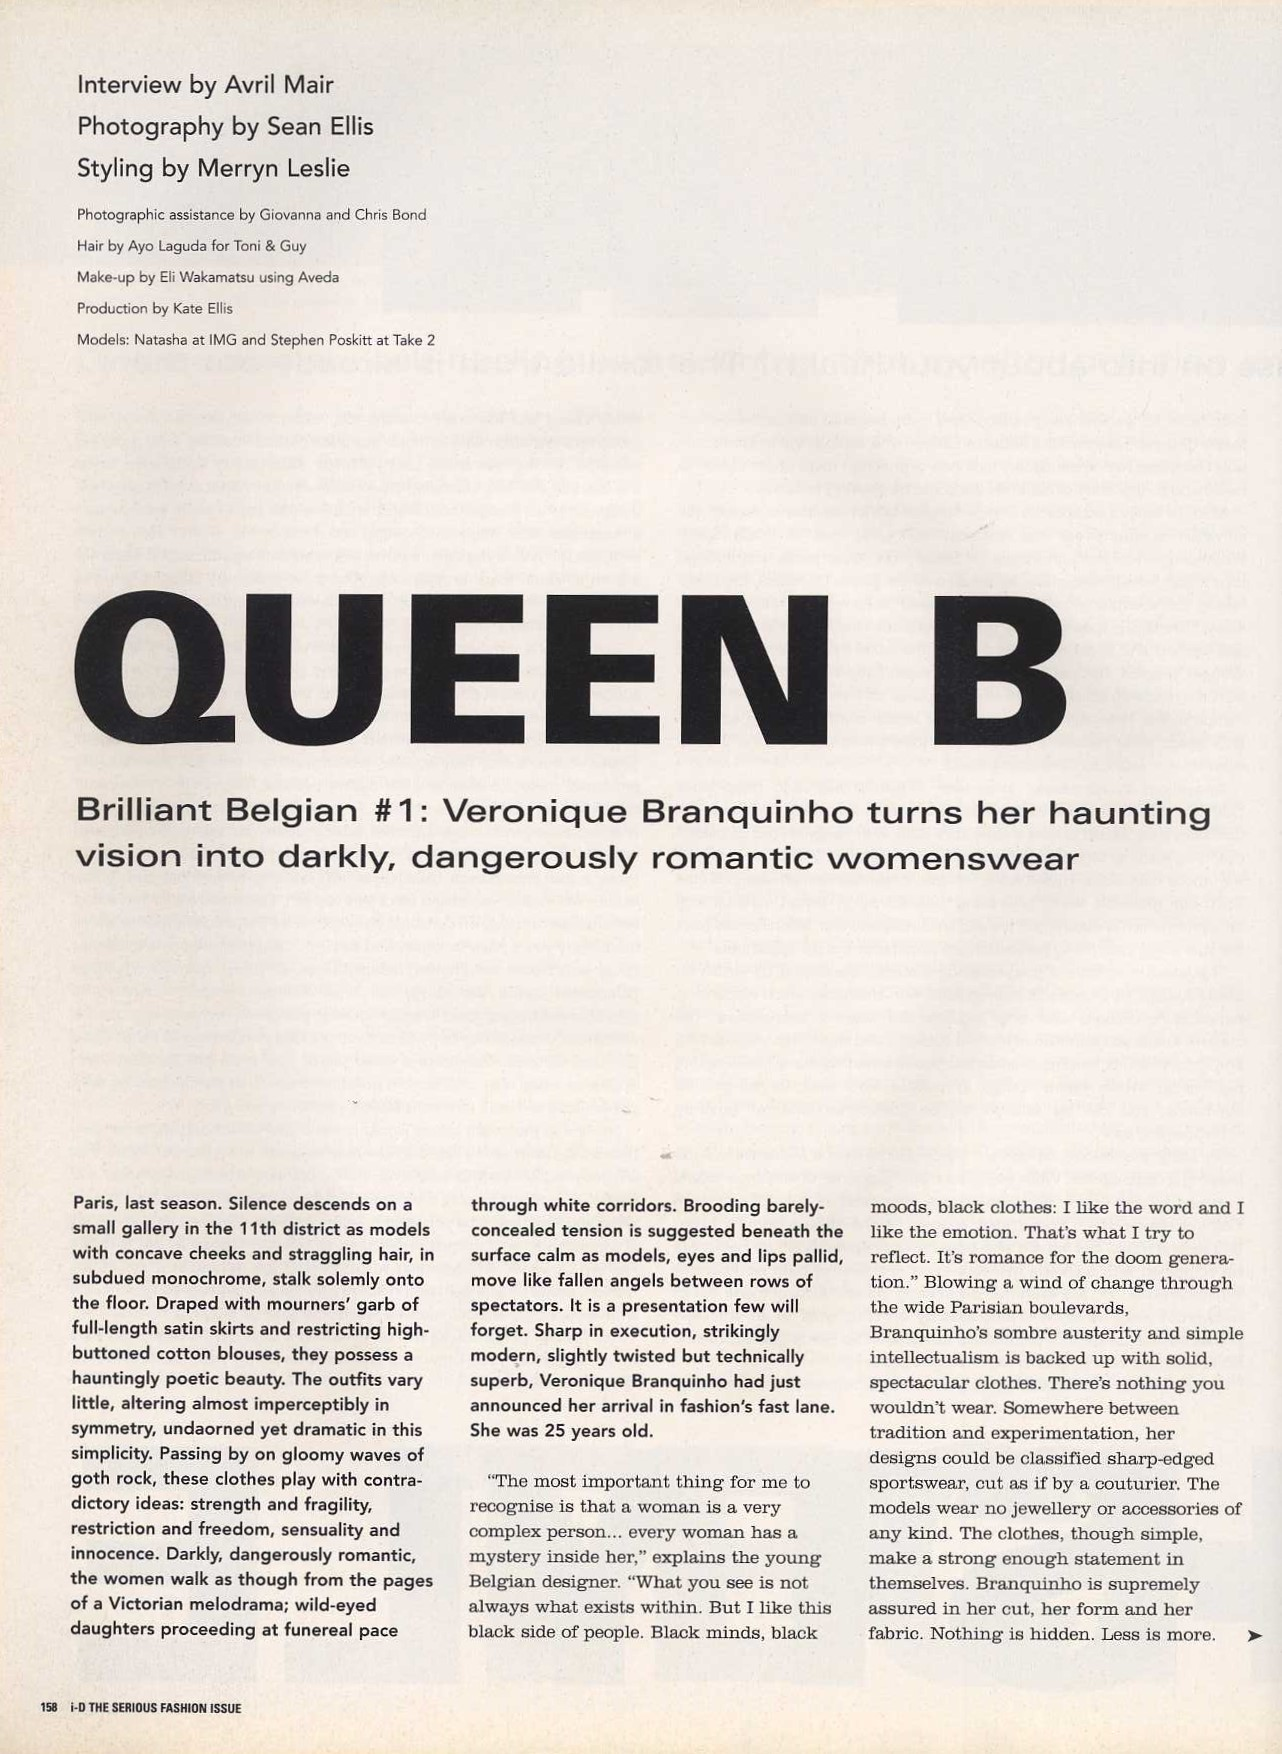 QUEEN B | VERONIQUE BRANQUINHO | NATASHA PHOTOGRAPHED BY SEAN ELLIS | STYLING MERRYN LESLIE | i-D NO.185 | APRIL 1999